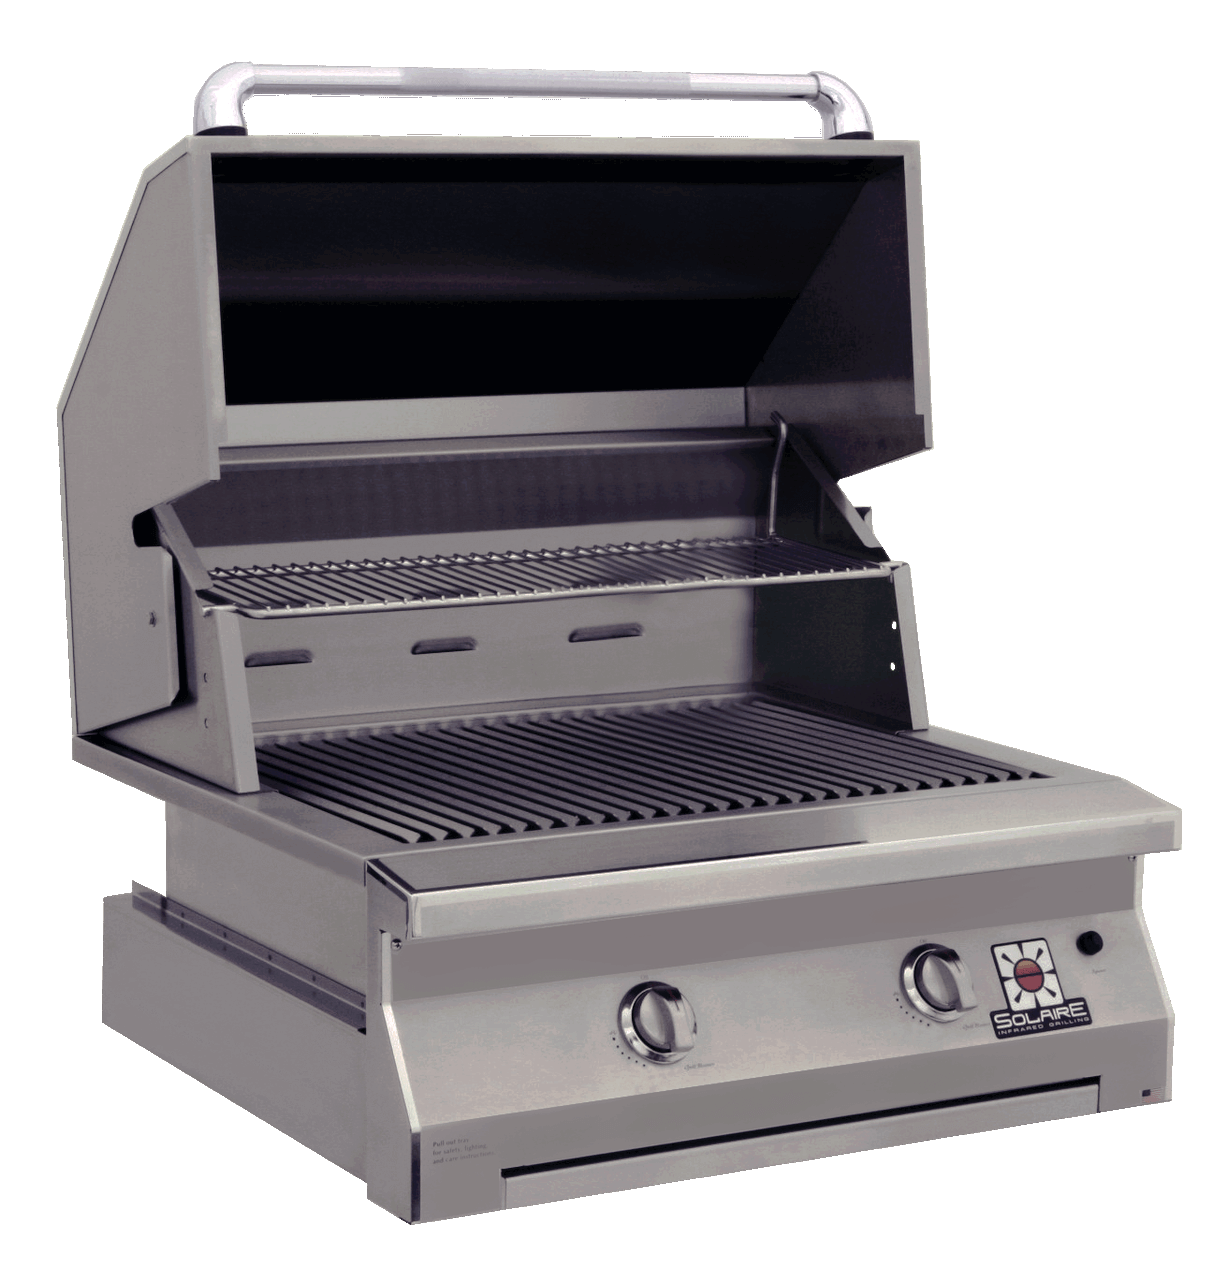 Solaire IRBQ-30 Built-in Grill